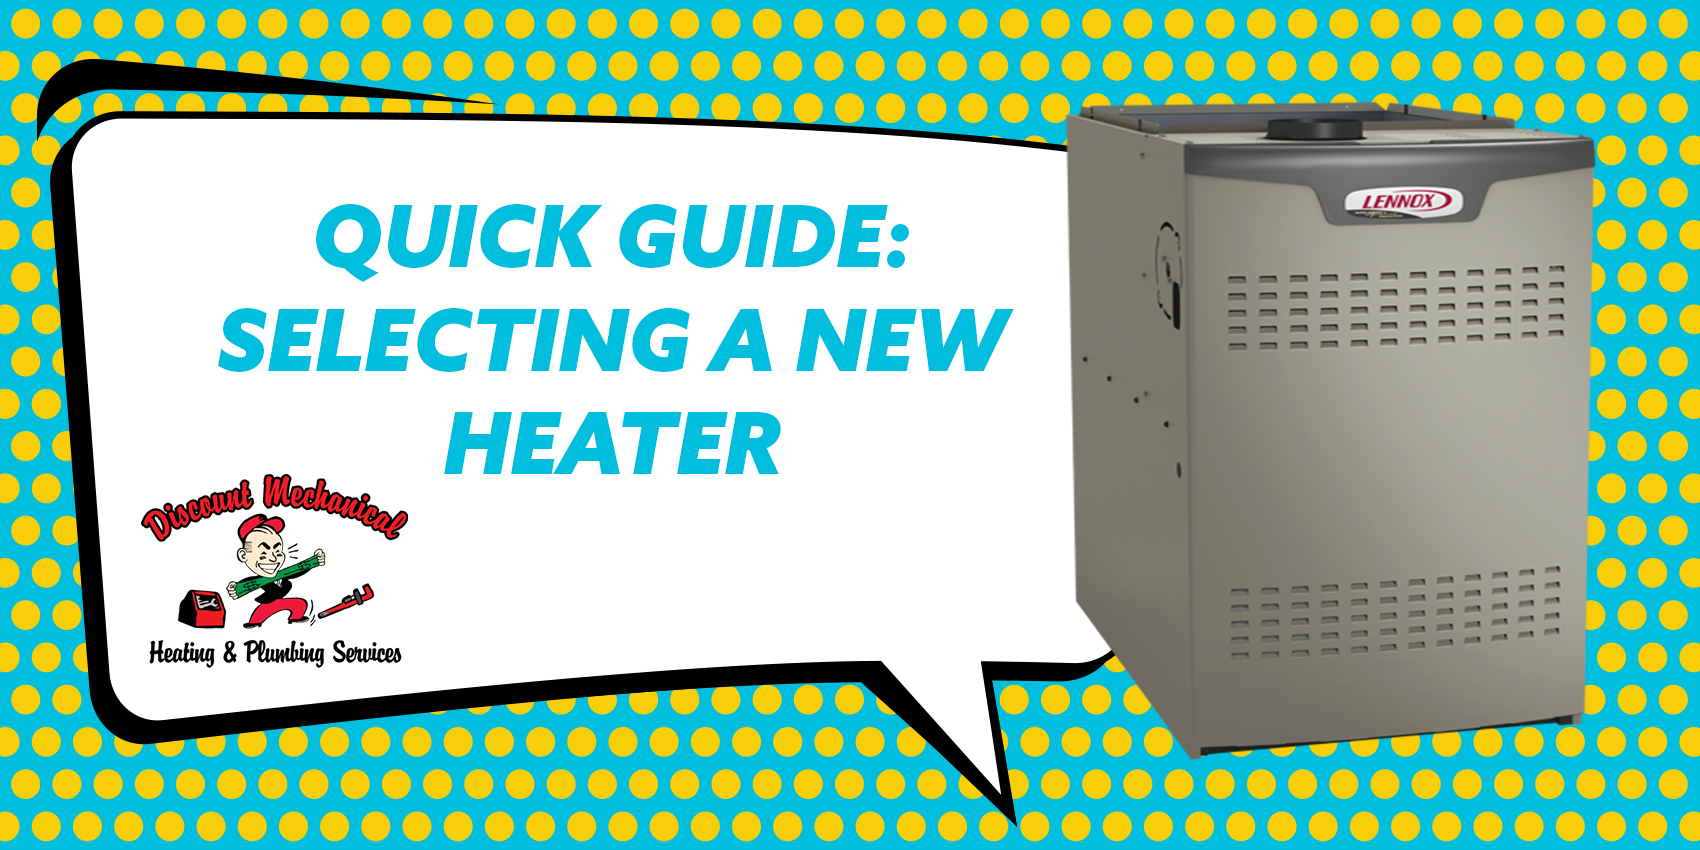 Quick Guide: Selecting a New Heater